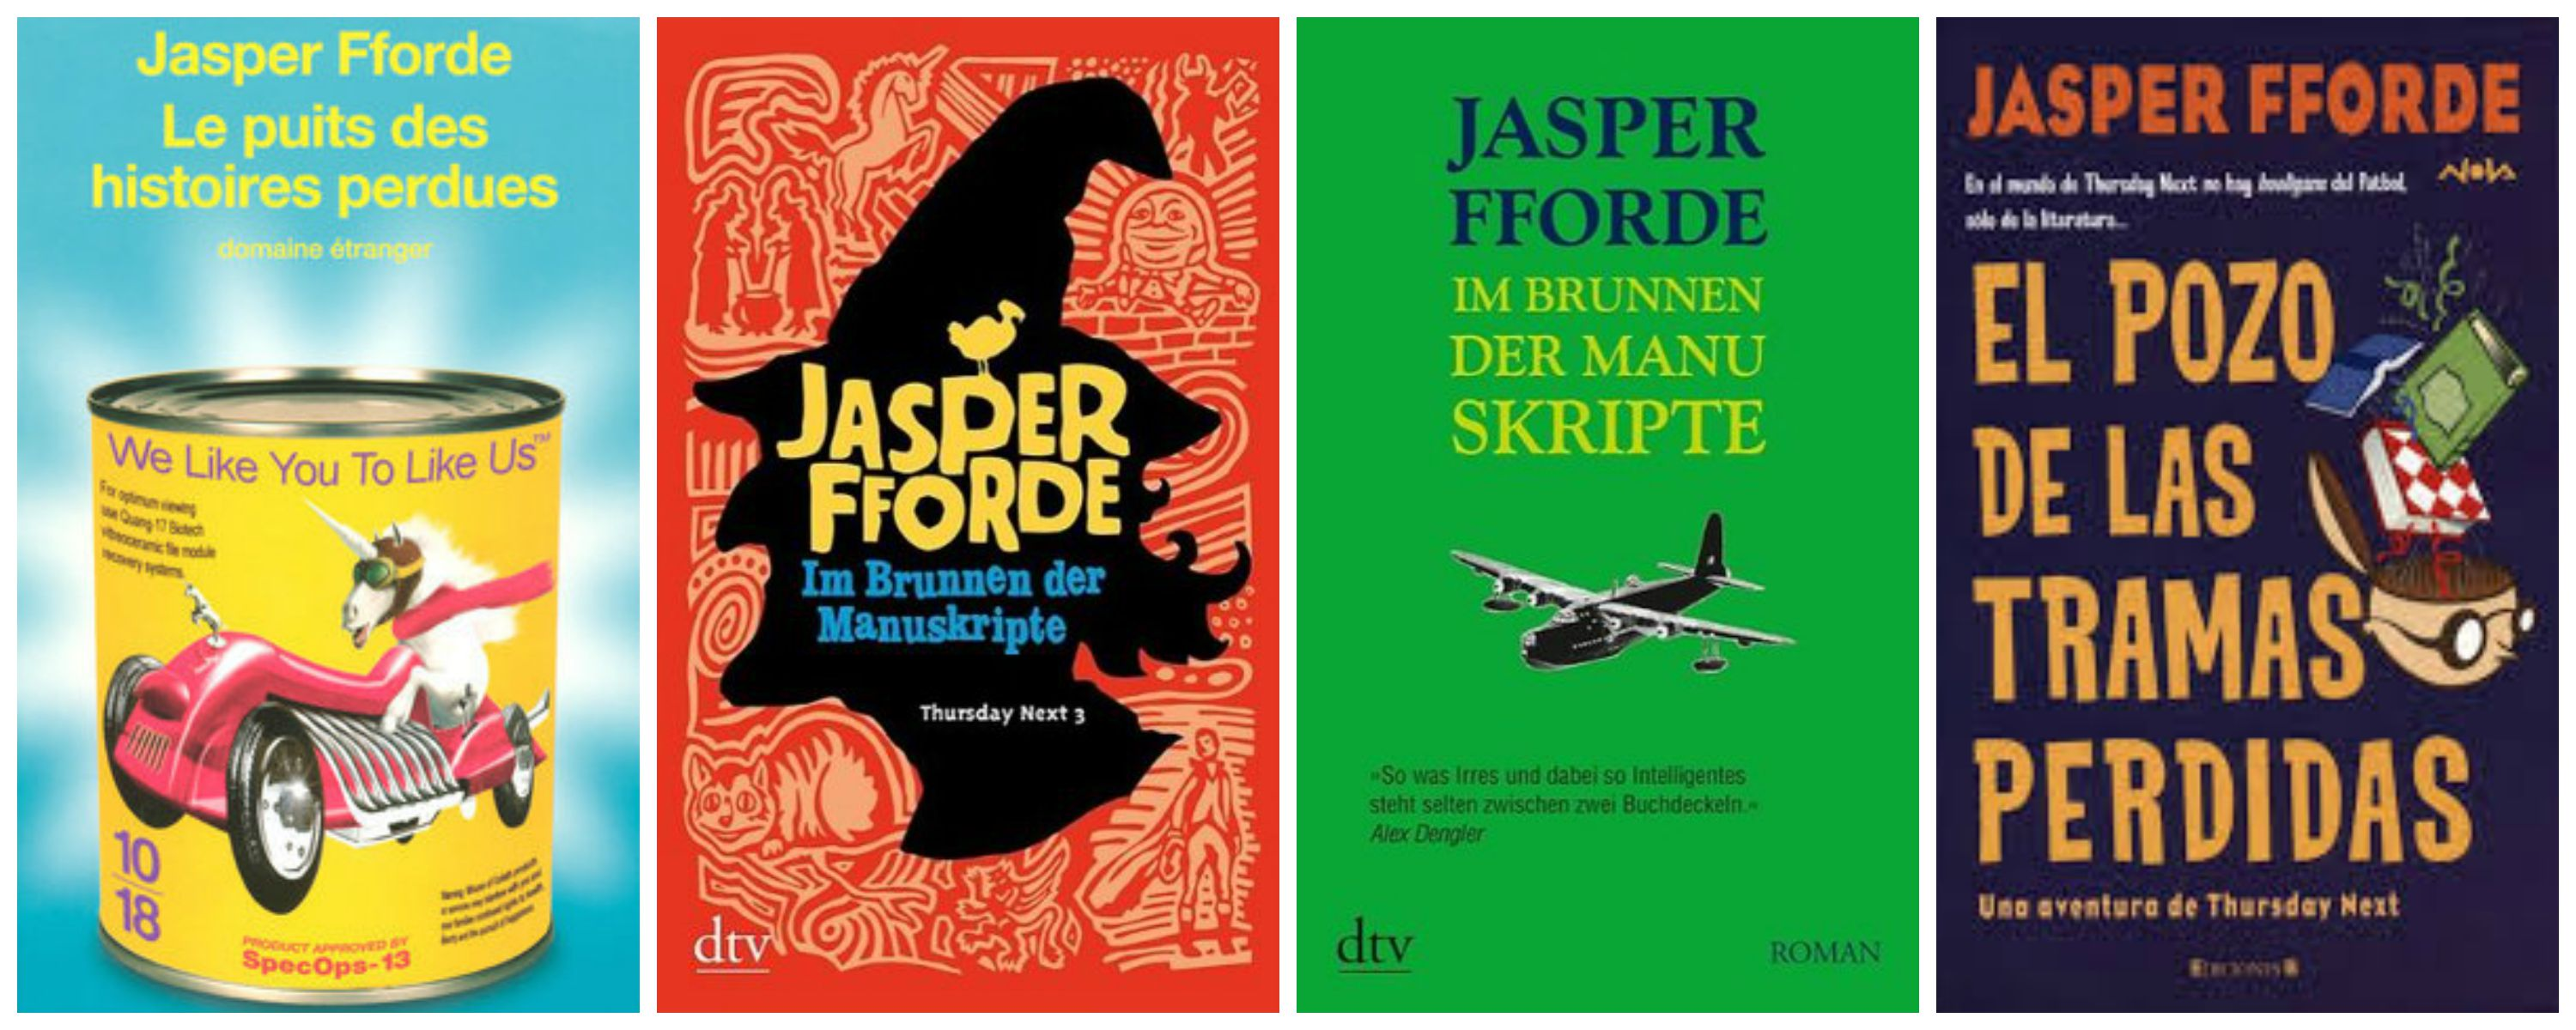 The Well of Lost Plots French German and Spanish covers